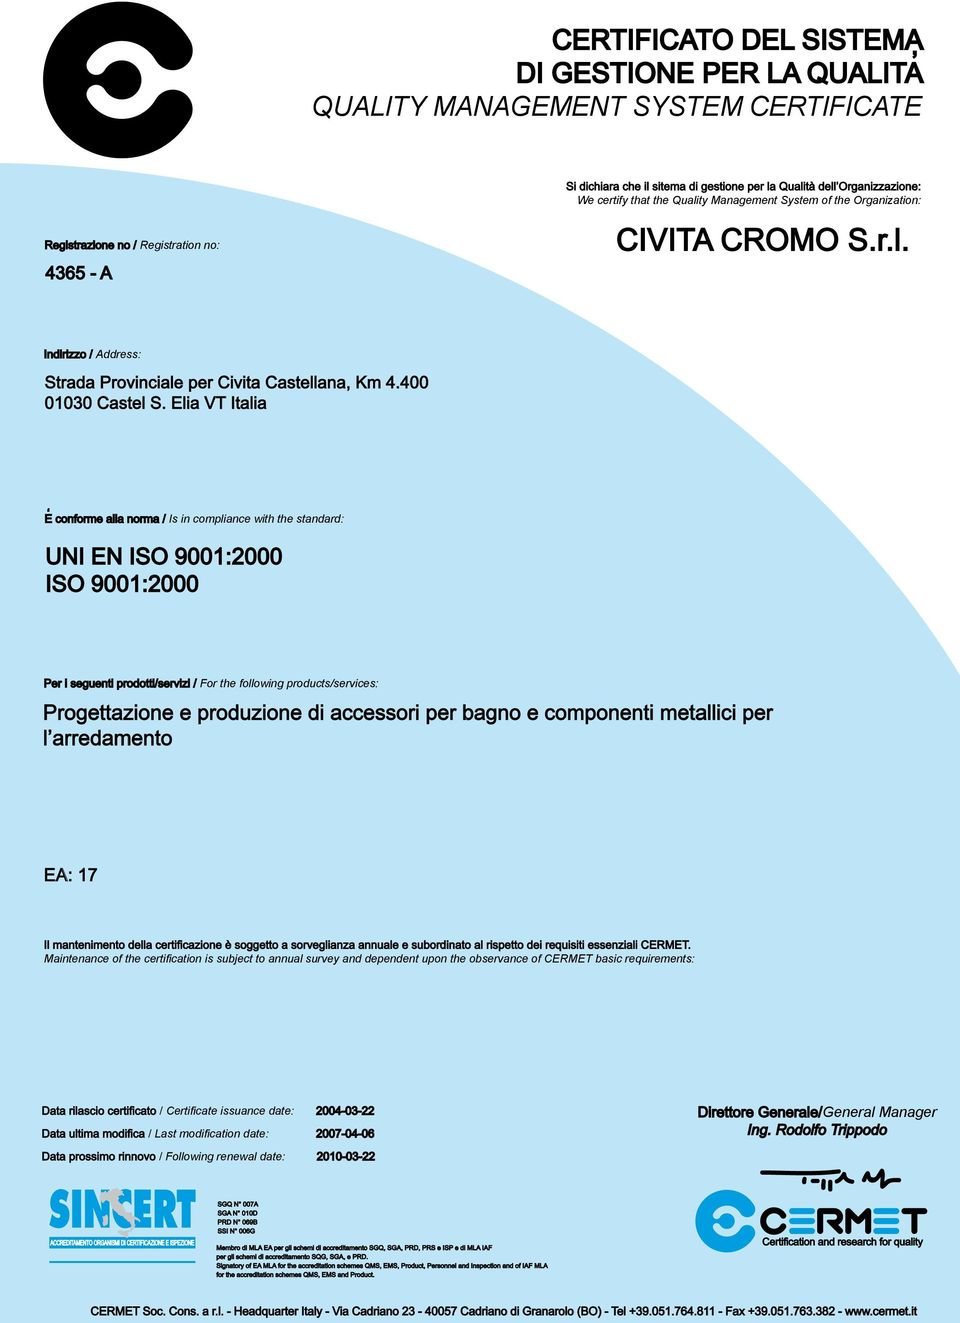 Elia VT Italia E conforme alla norma / Is in compliance with the standard: UNI EN ISO 9001:2000 ISO 9001:2000 Per i seguenti prodotti/servizi / For the following products/services: Progettazione e